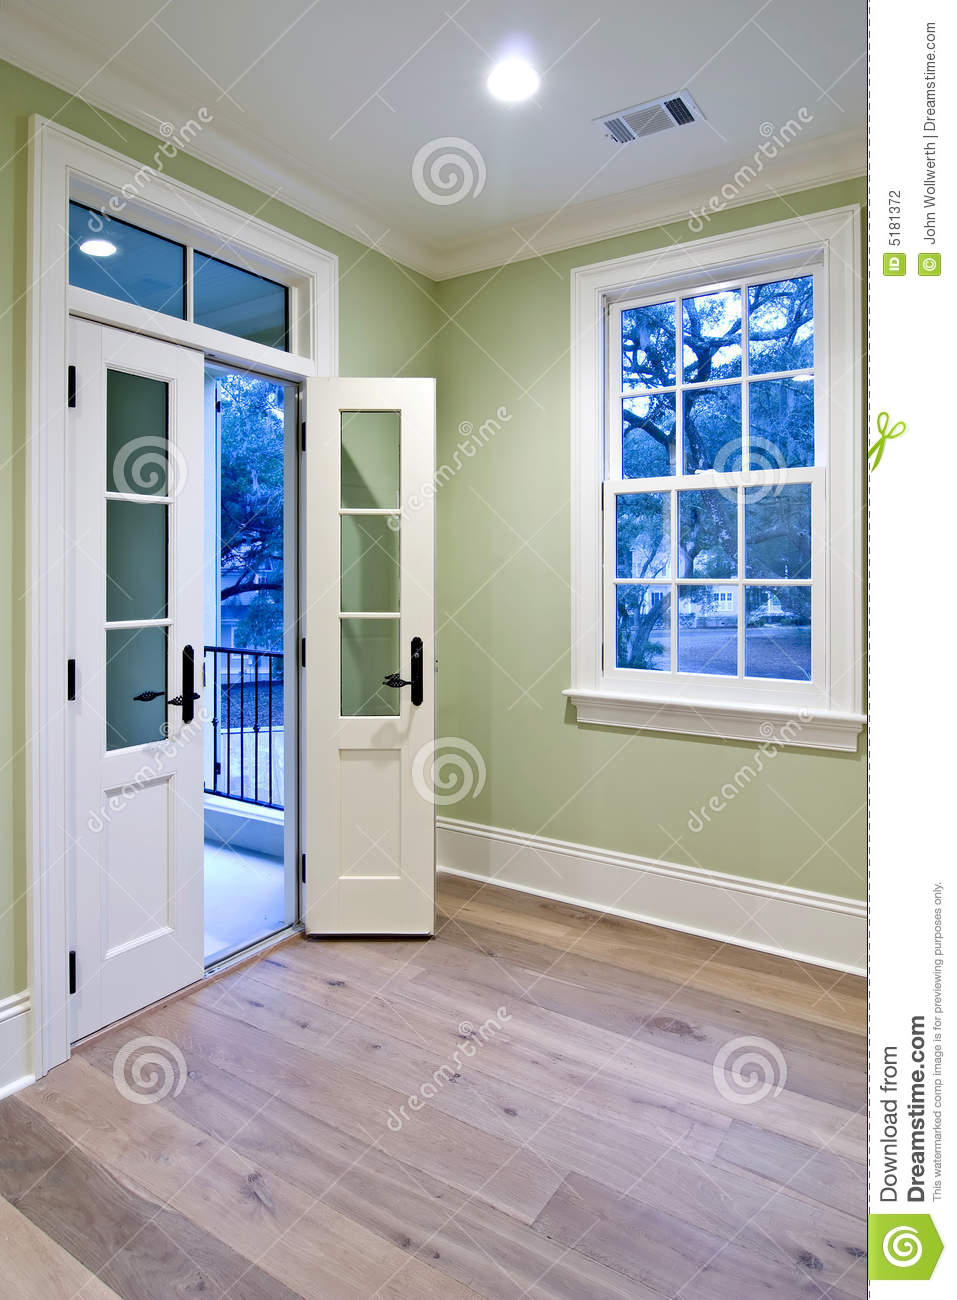 Double Doors Elegant Interior Photos Free Royalty Free Stock Photos From Dreamstime